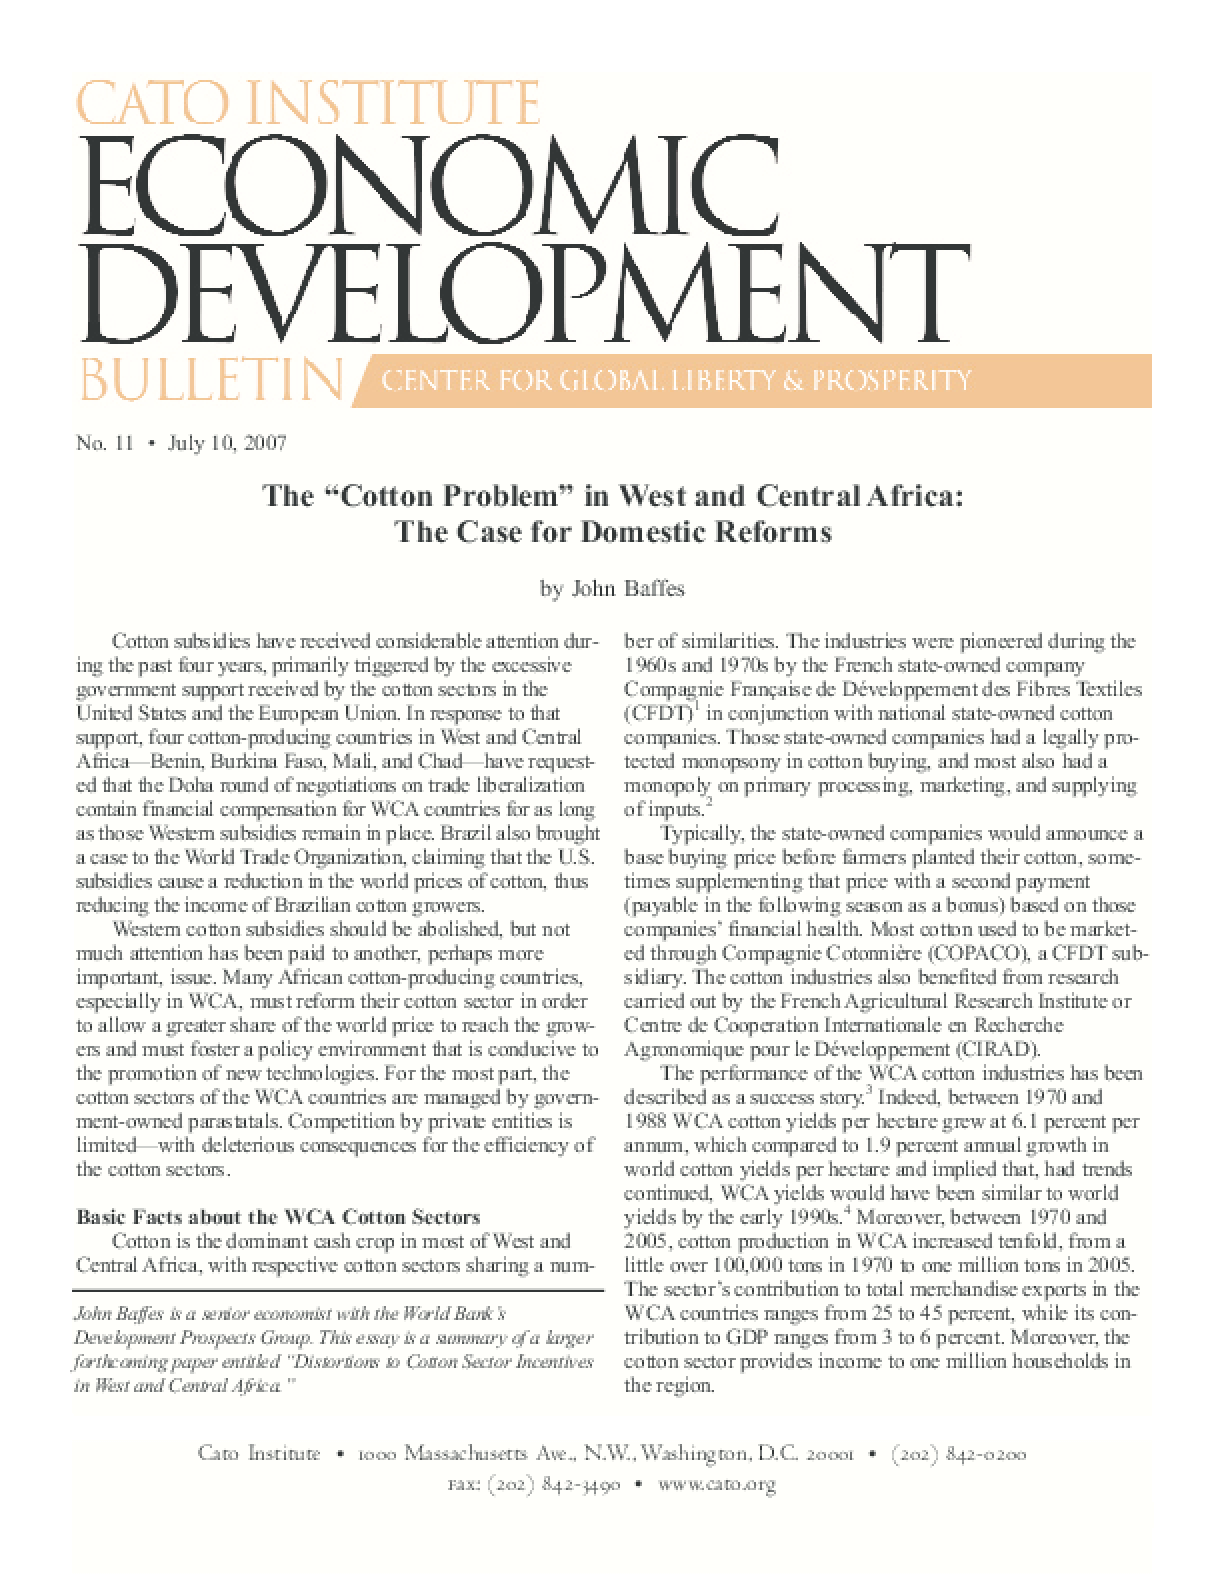 """The """"Cotton Problem"""" in West and Central Africa: The Case for Domestic Reforms"""